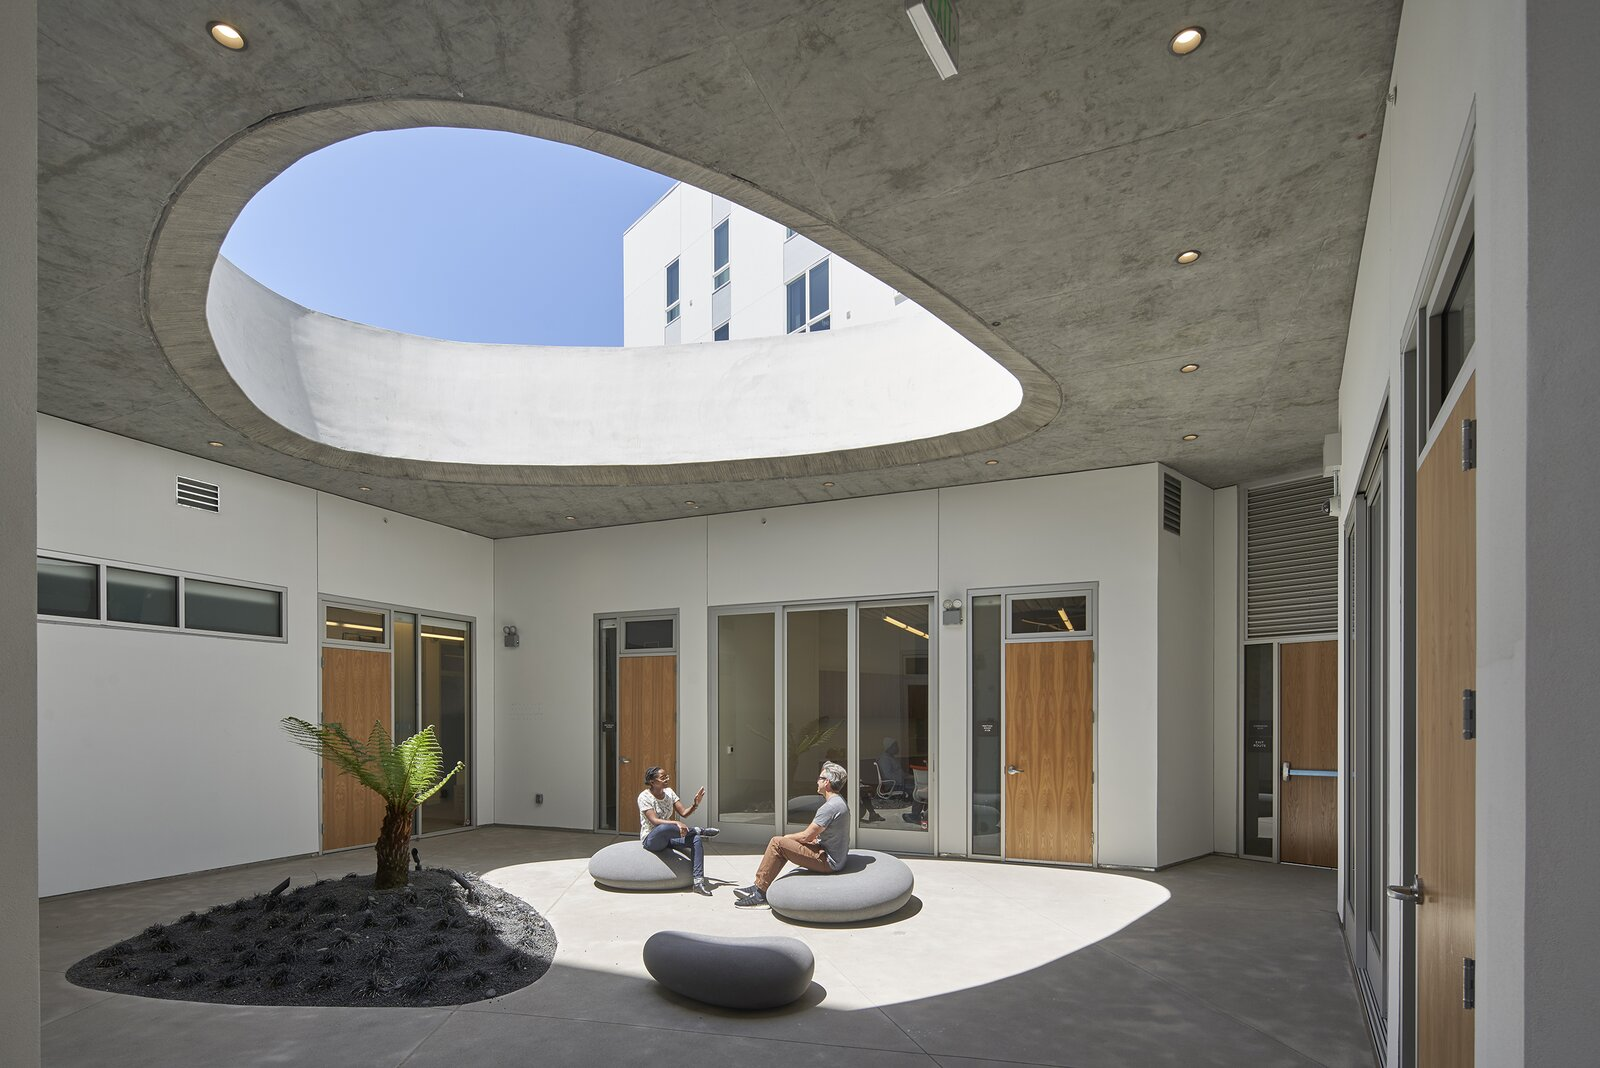 Photo 1 of 8 in 901 Fairfax Avenue by David Baker Architects